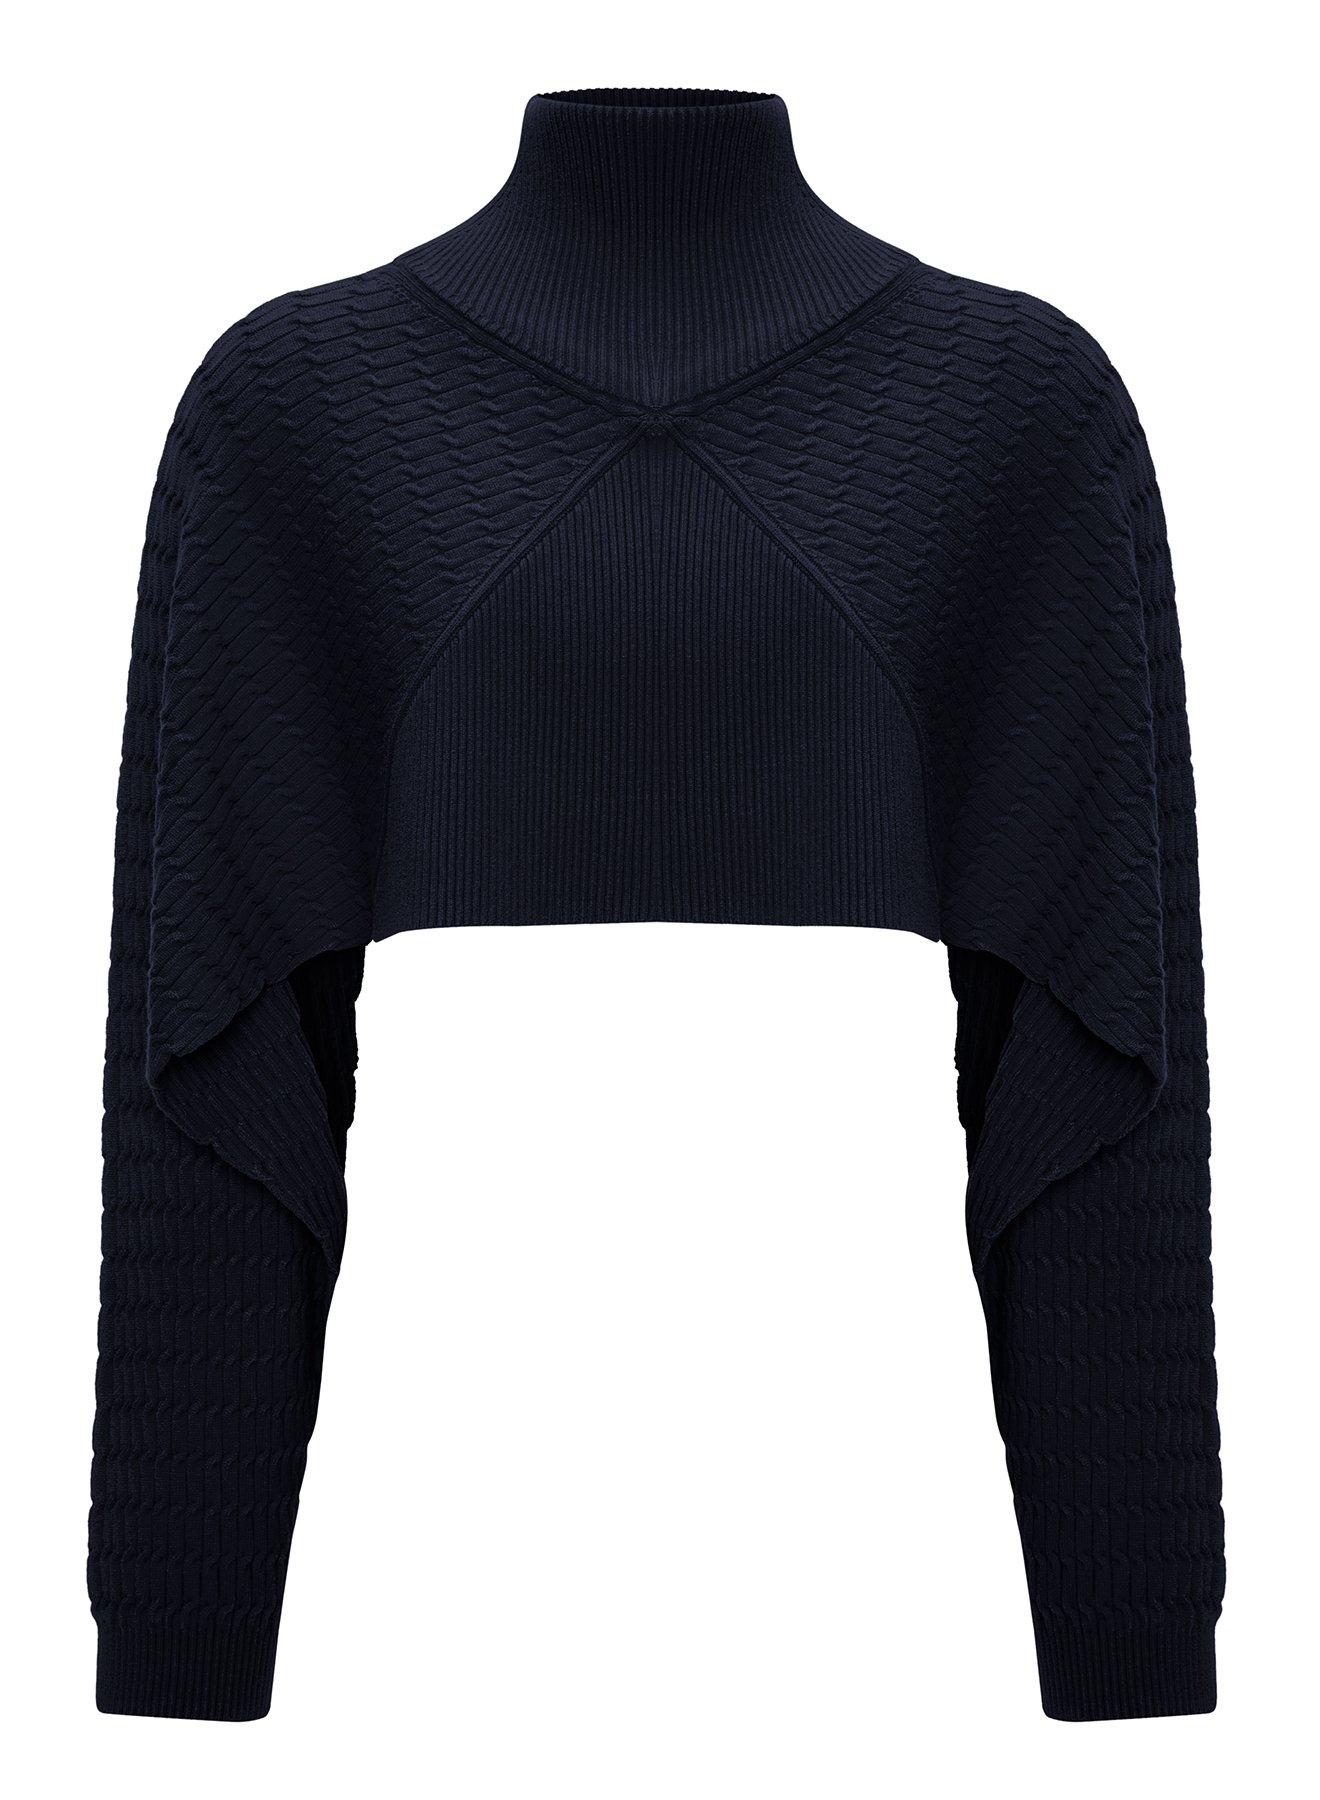 LOOSE FIT NAVY KNIT TOP